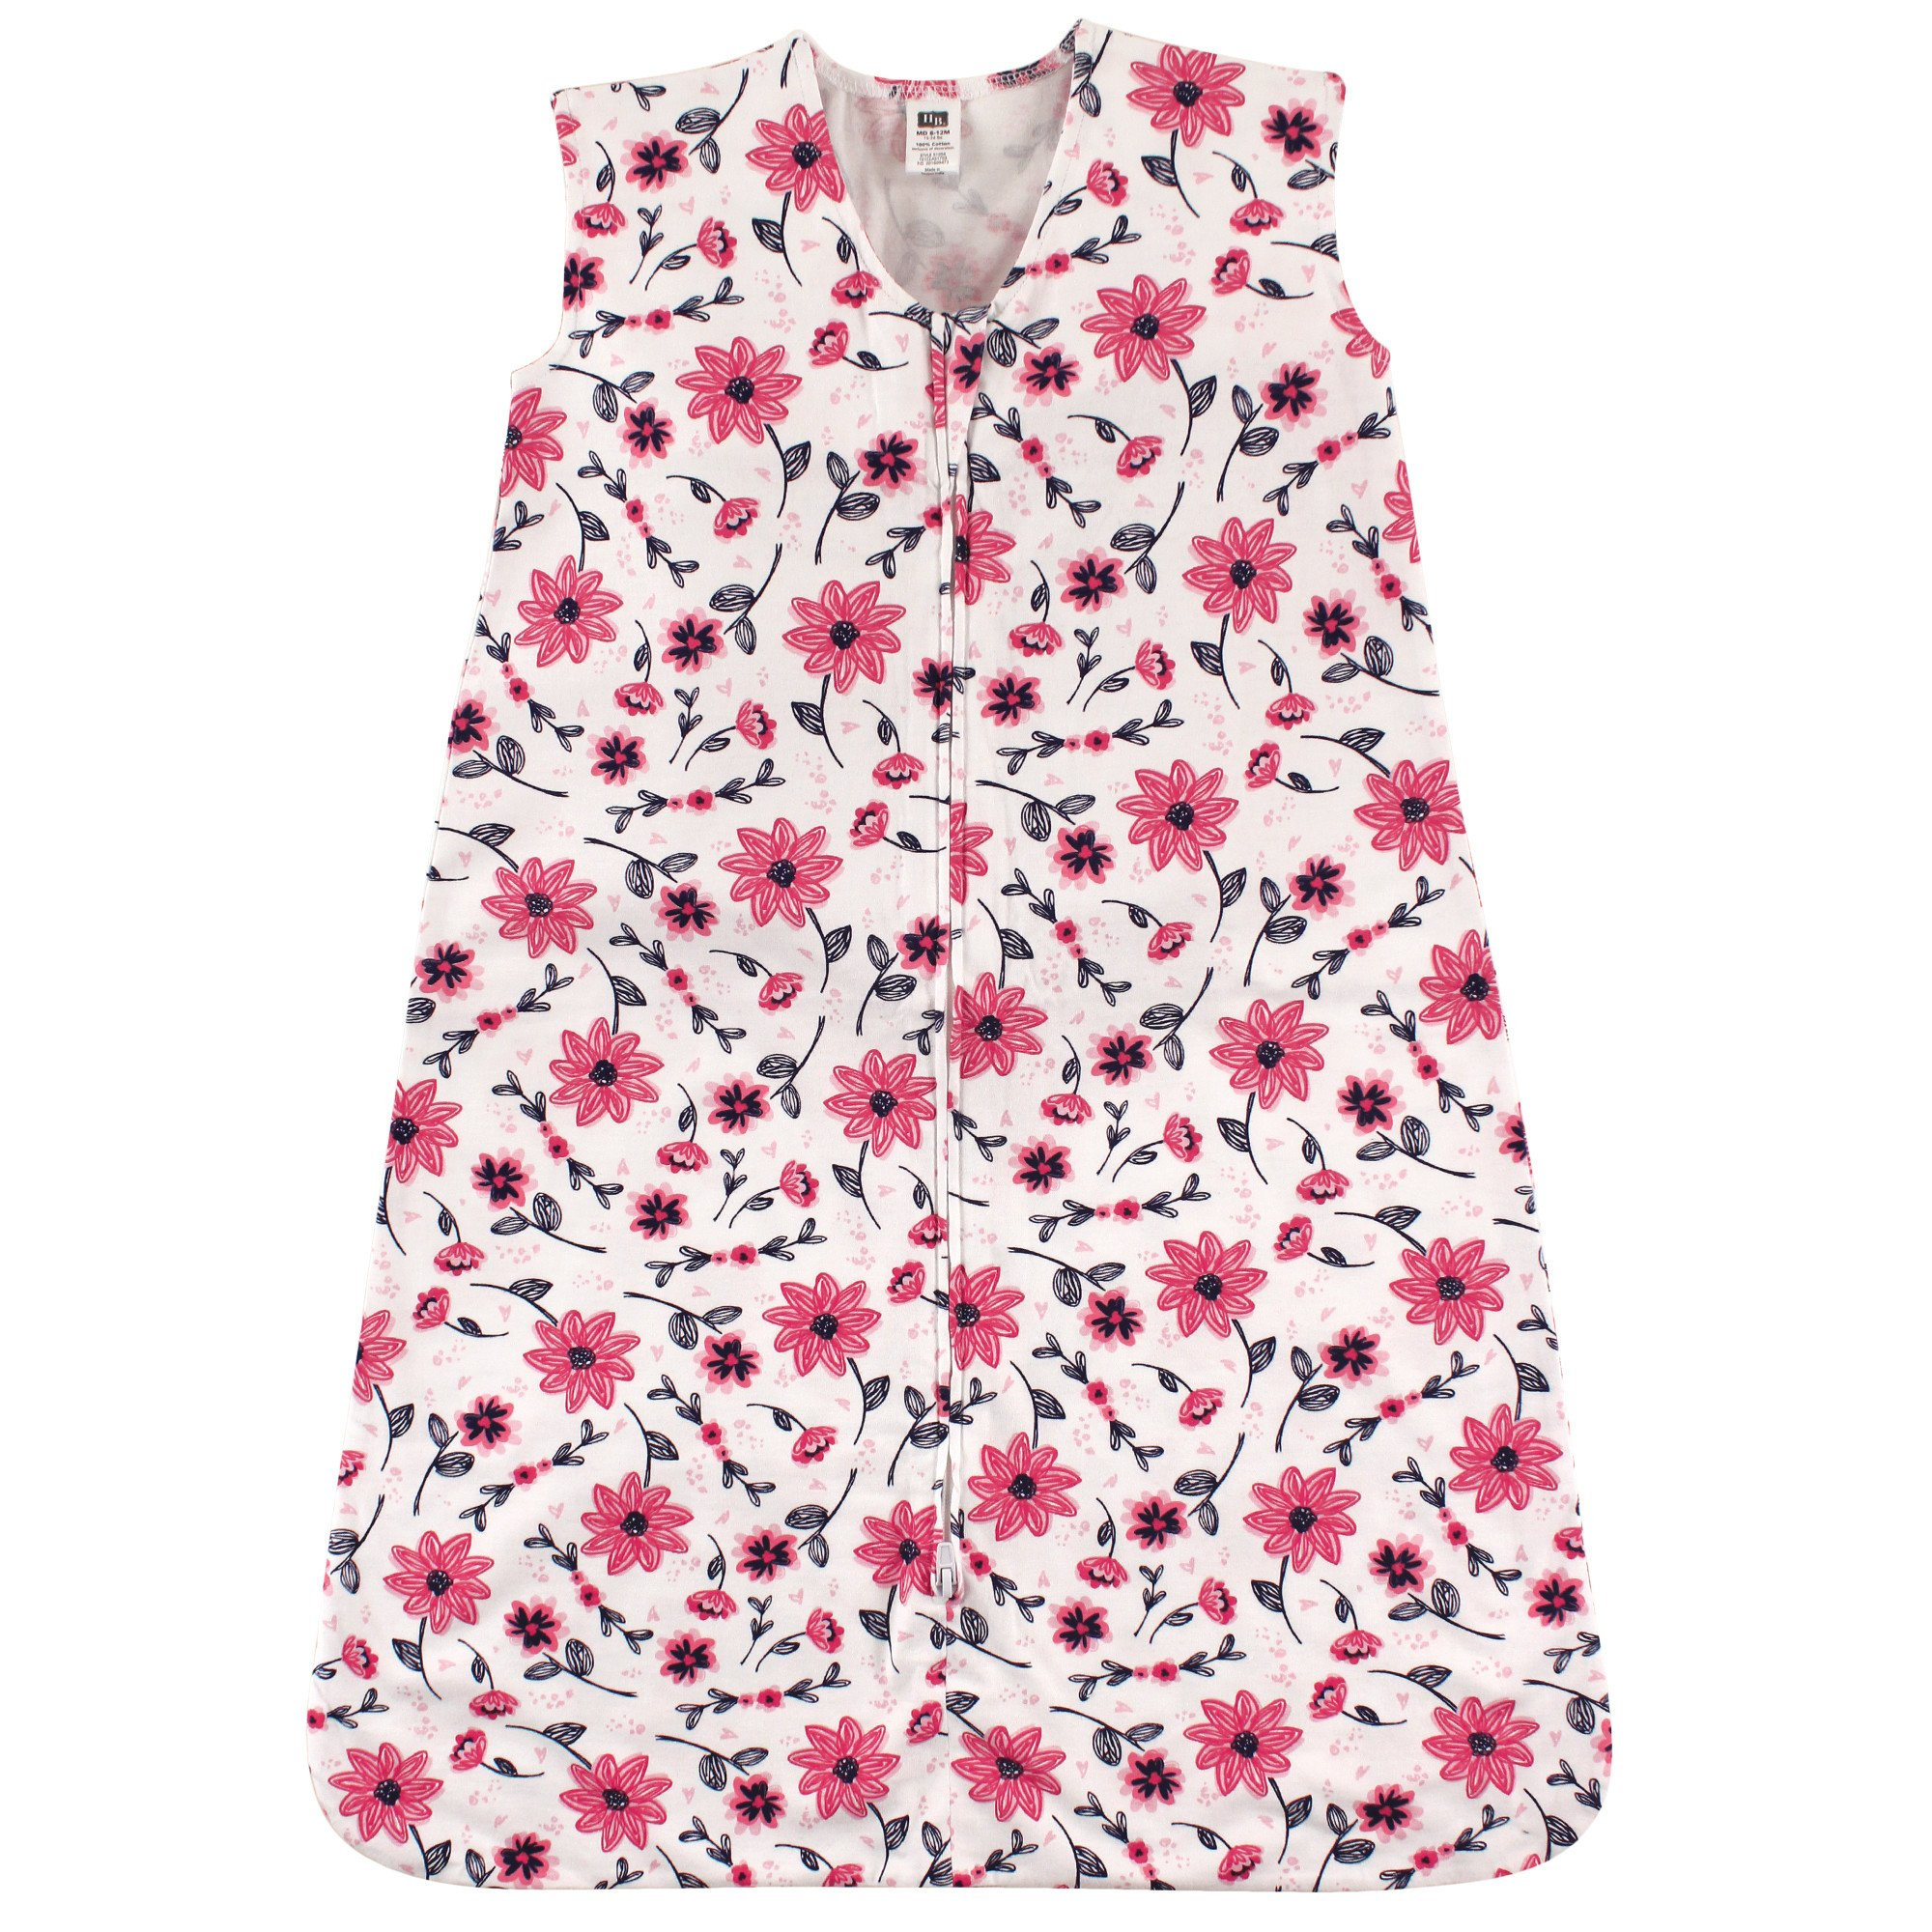 Hudson Baby Wearable Safe Soft Jersey Cotton Sleeping Bag, Pink Flowers, 18-24 Months by Hudson Baby